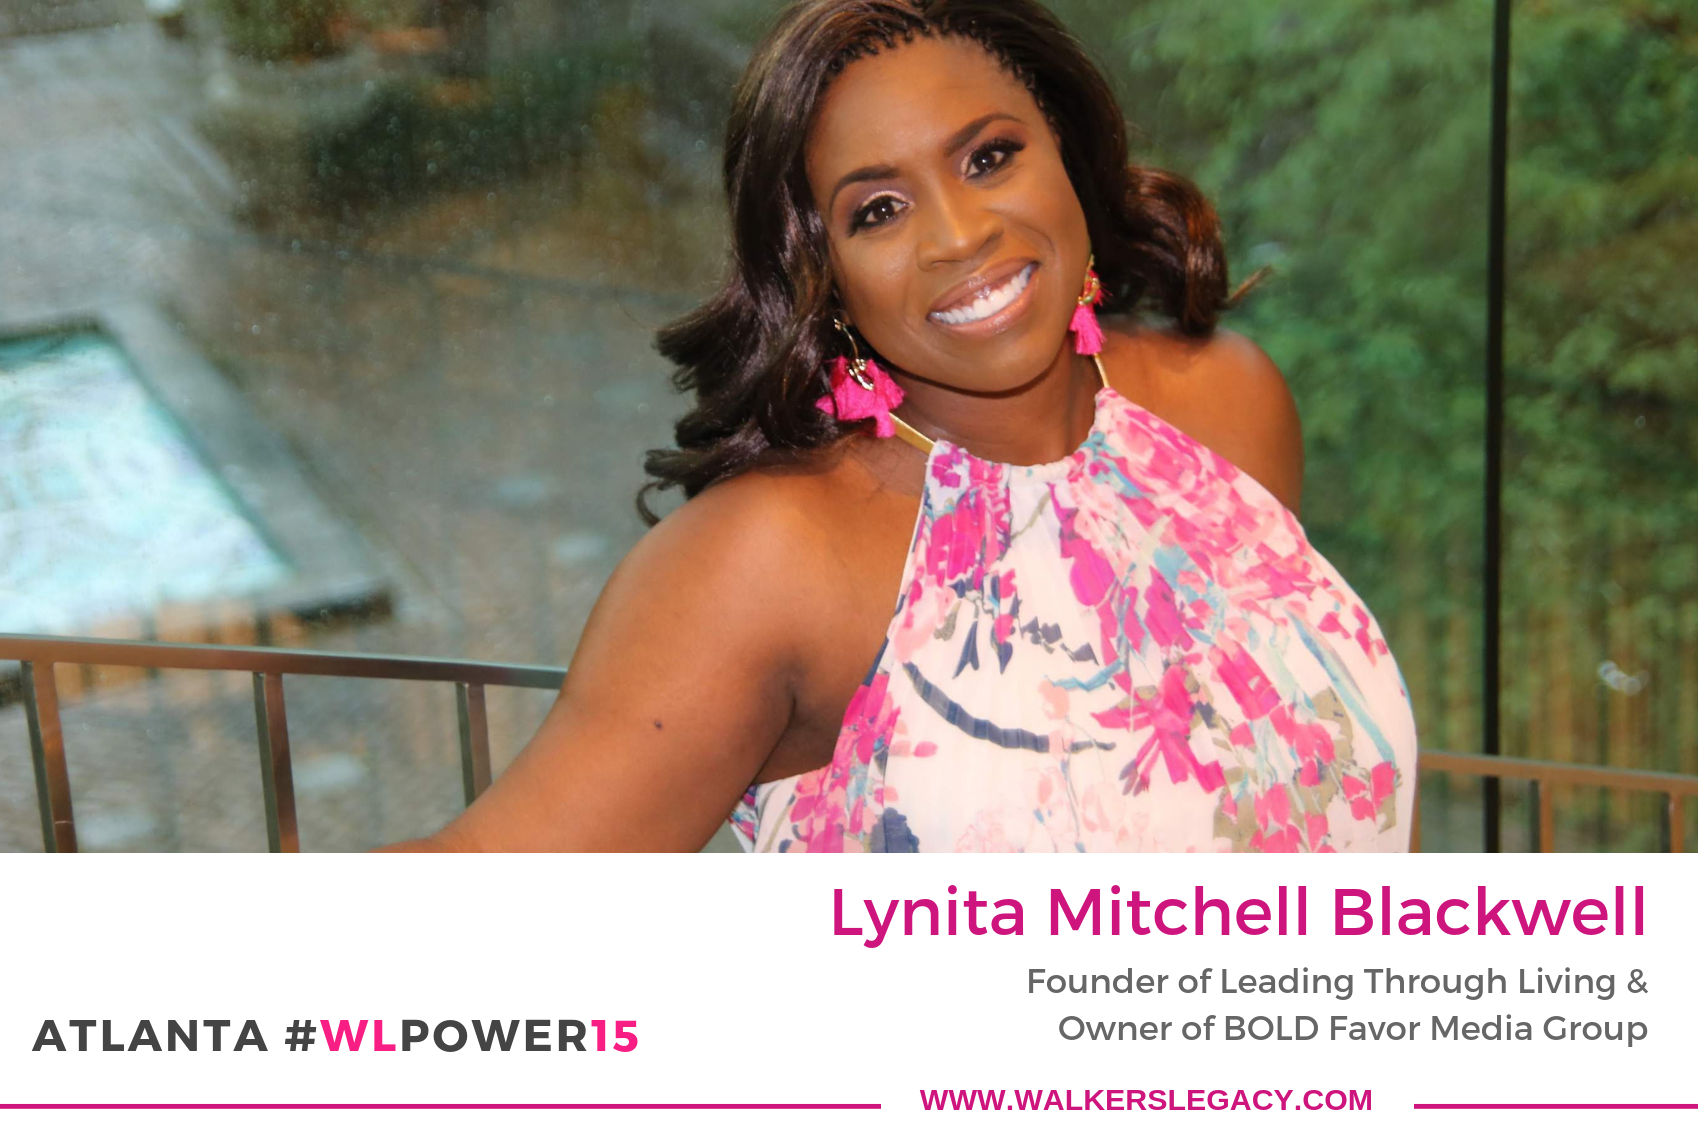 Lynita Mitchell Blackwell